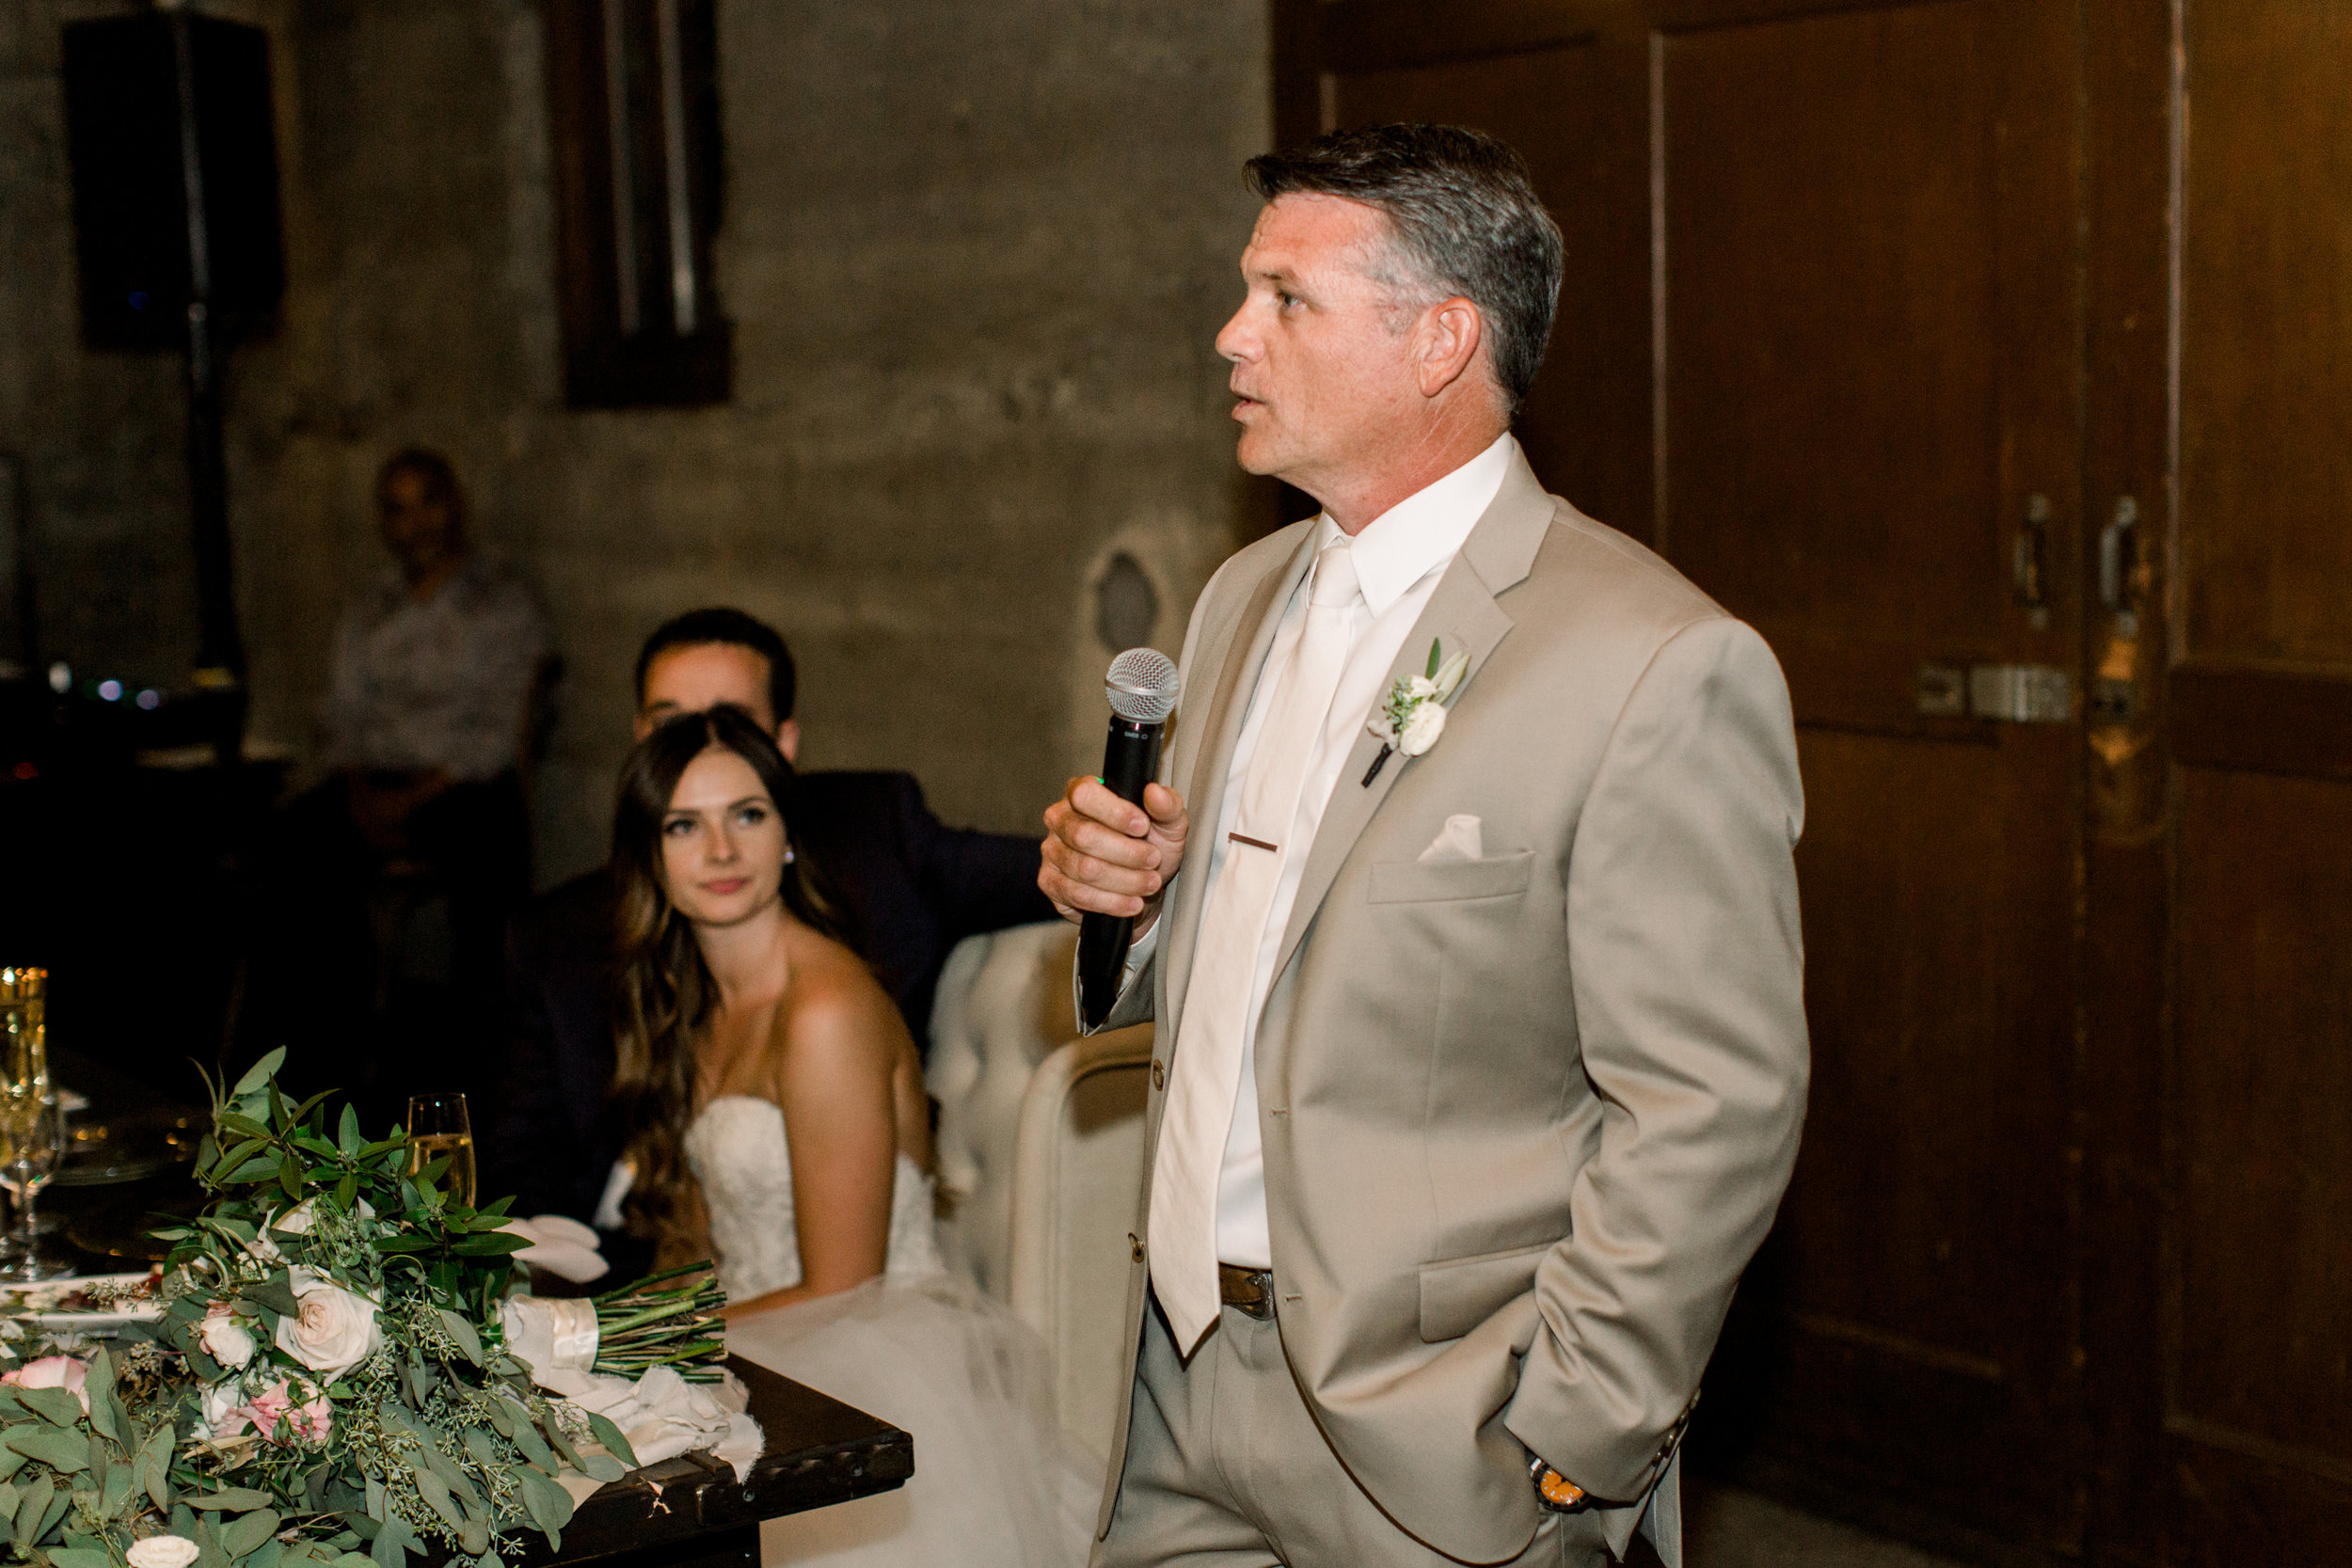 muriettas-well-wedding-in-livermore-california-50.jpg